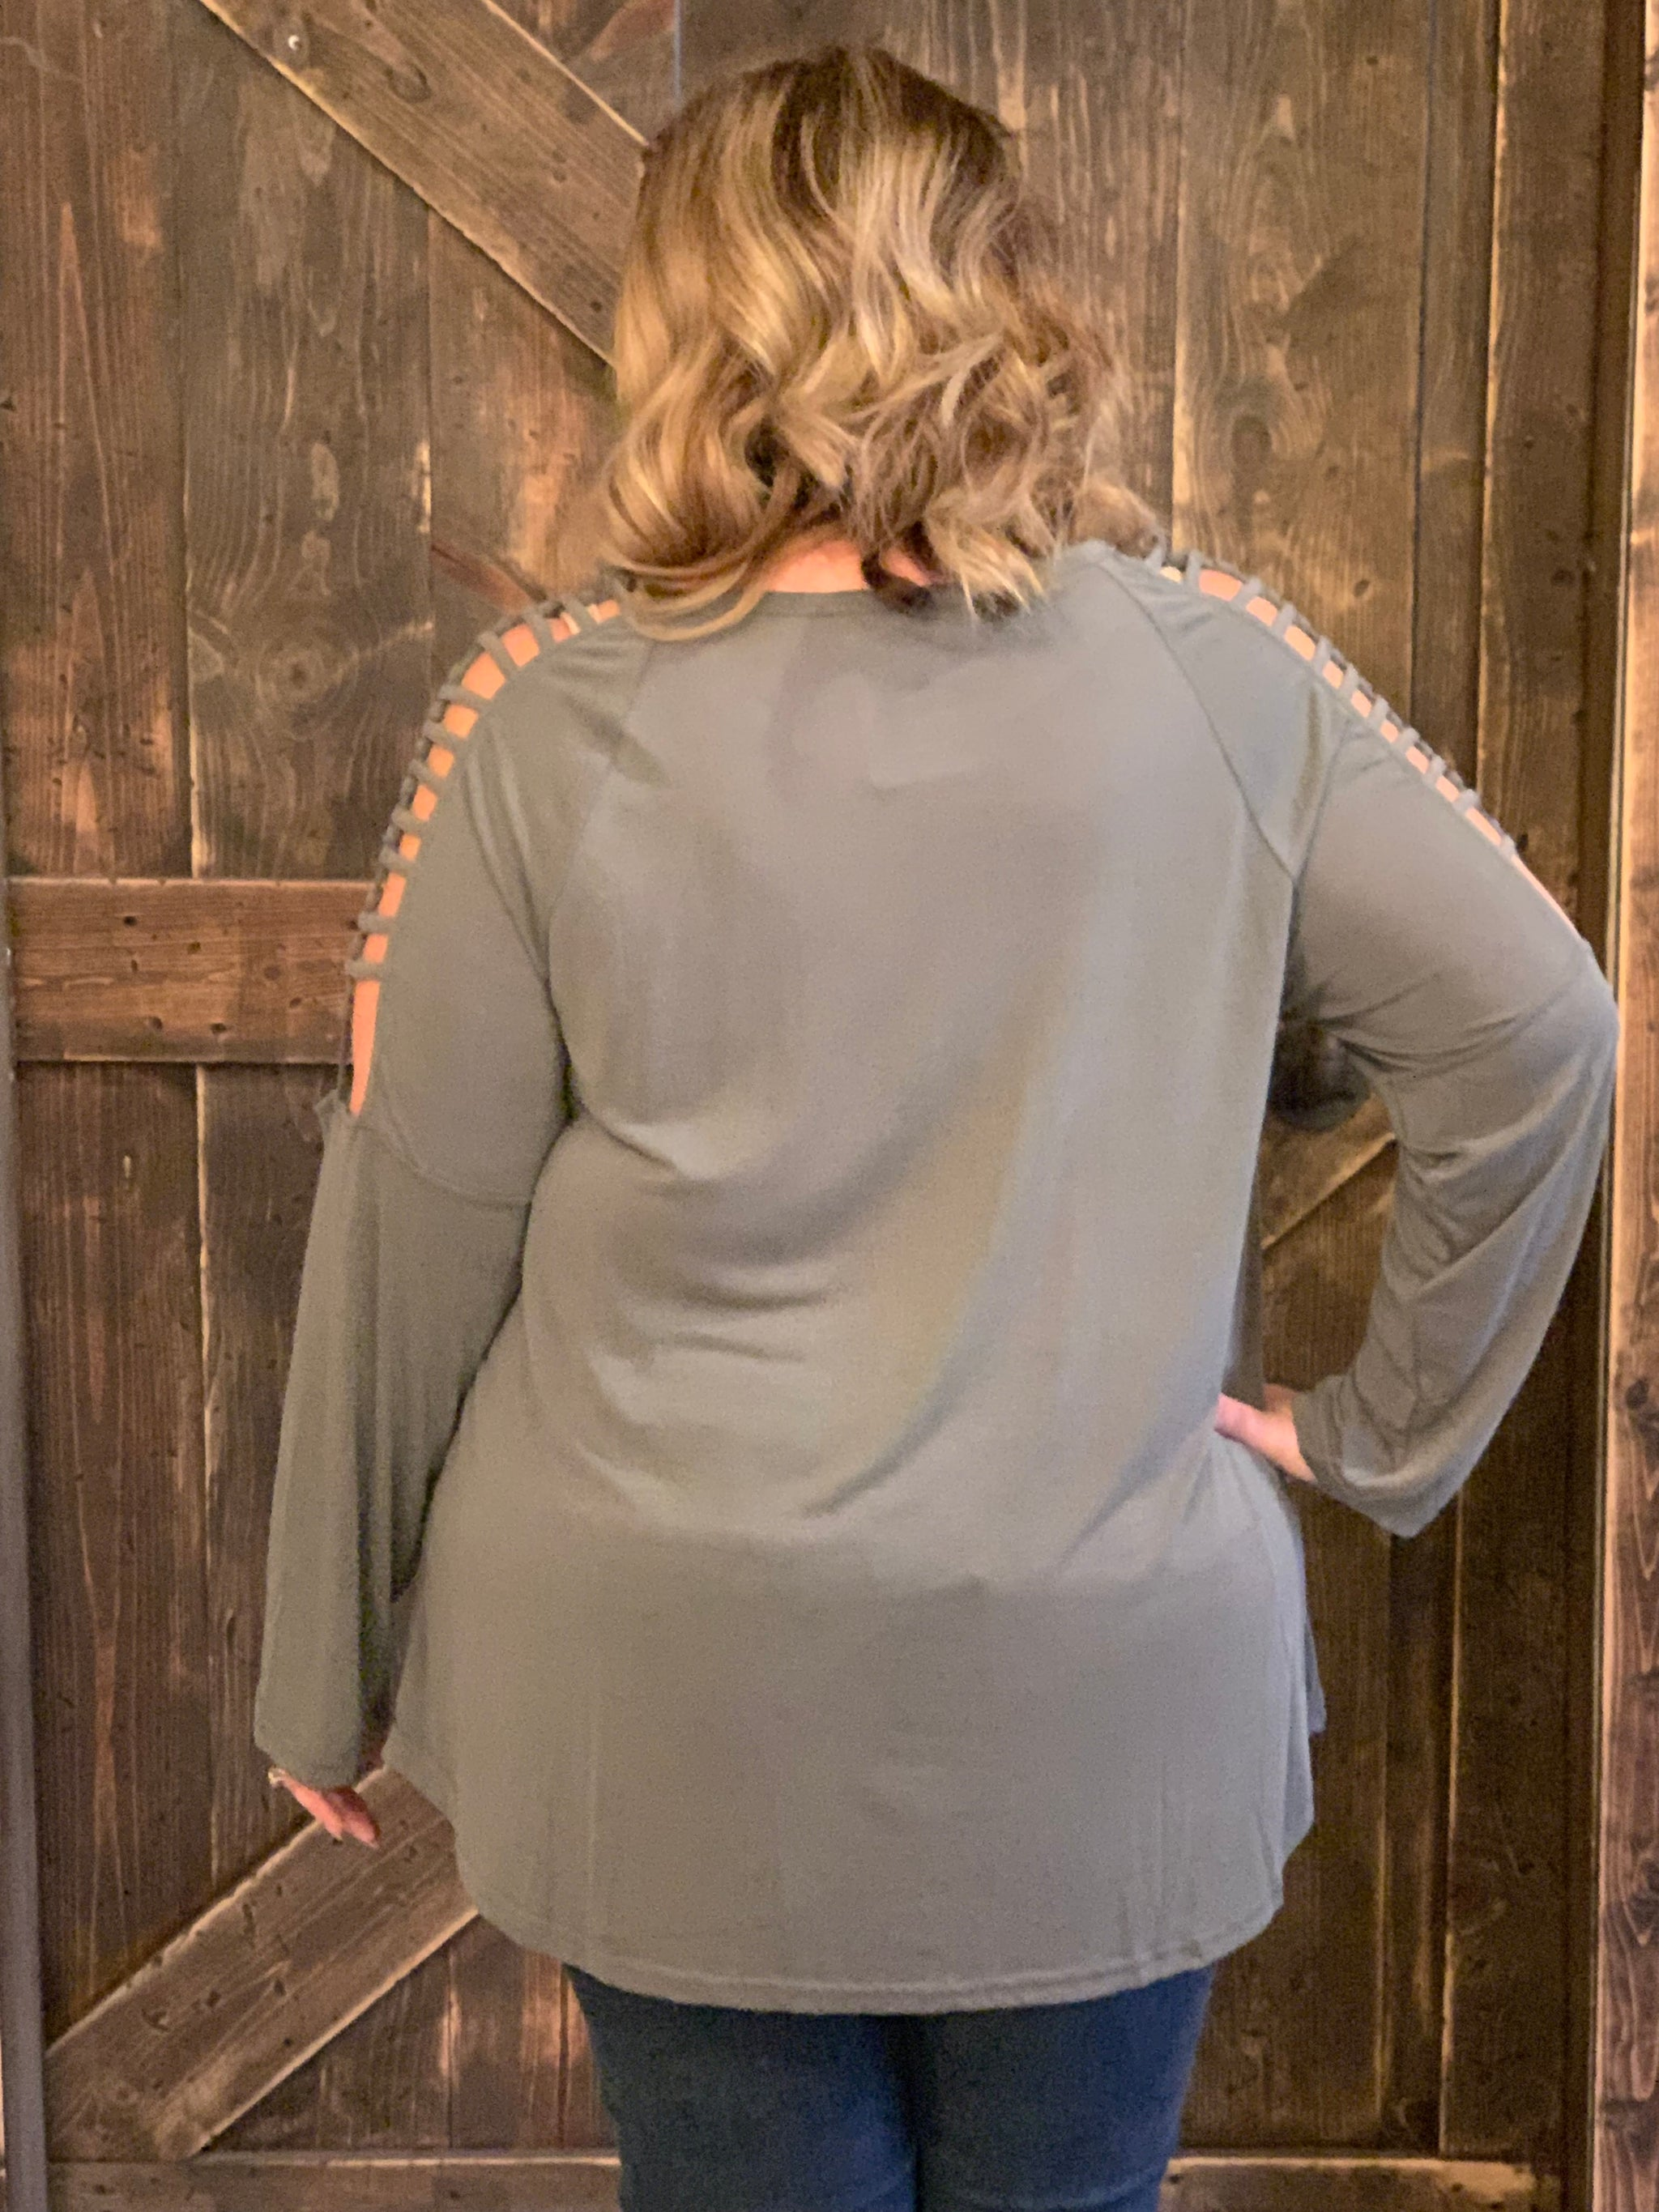 c29baa2e545d09 Caged Cold Shoulder Modal Top - Curvy - The Rustic Rack Boutique